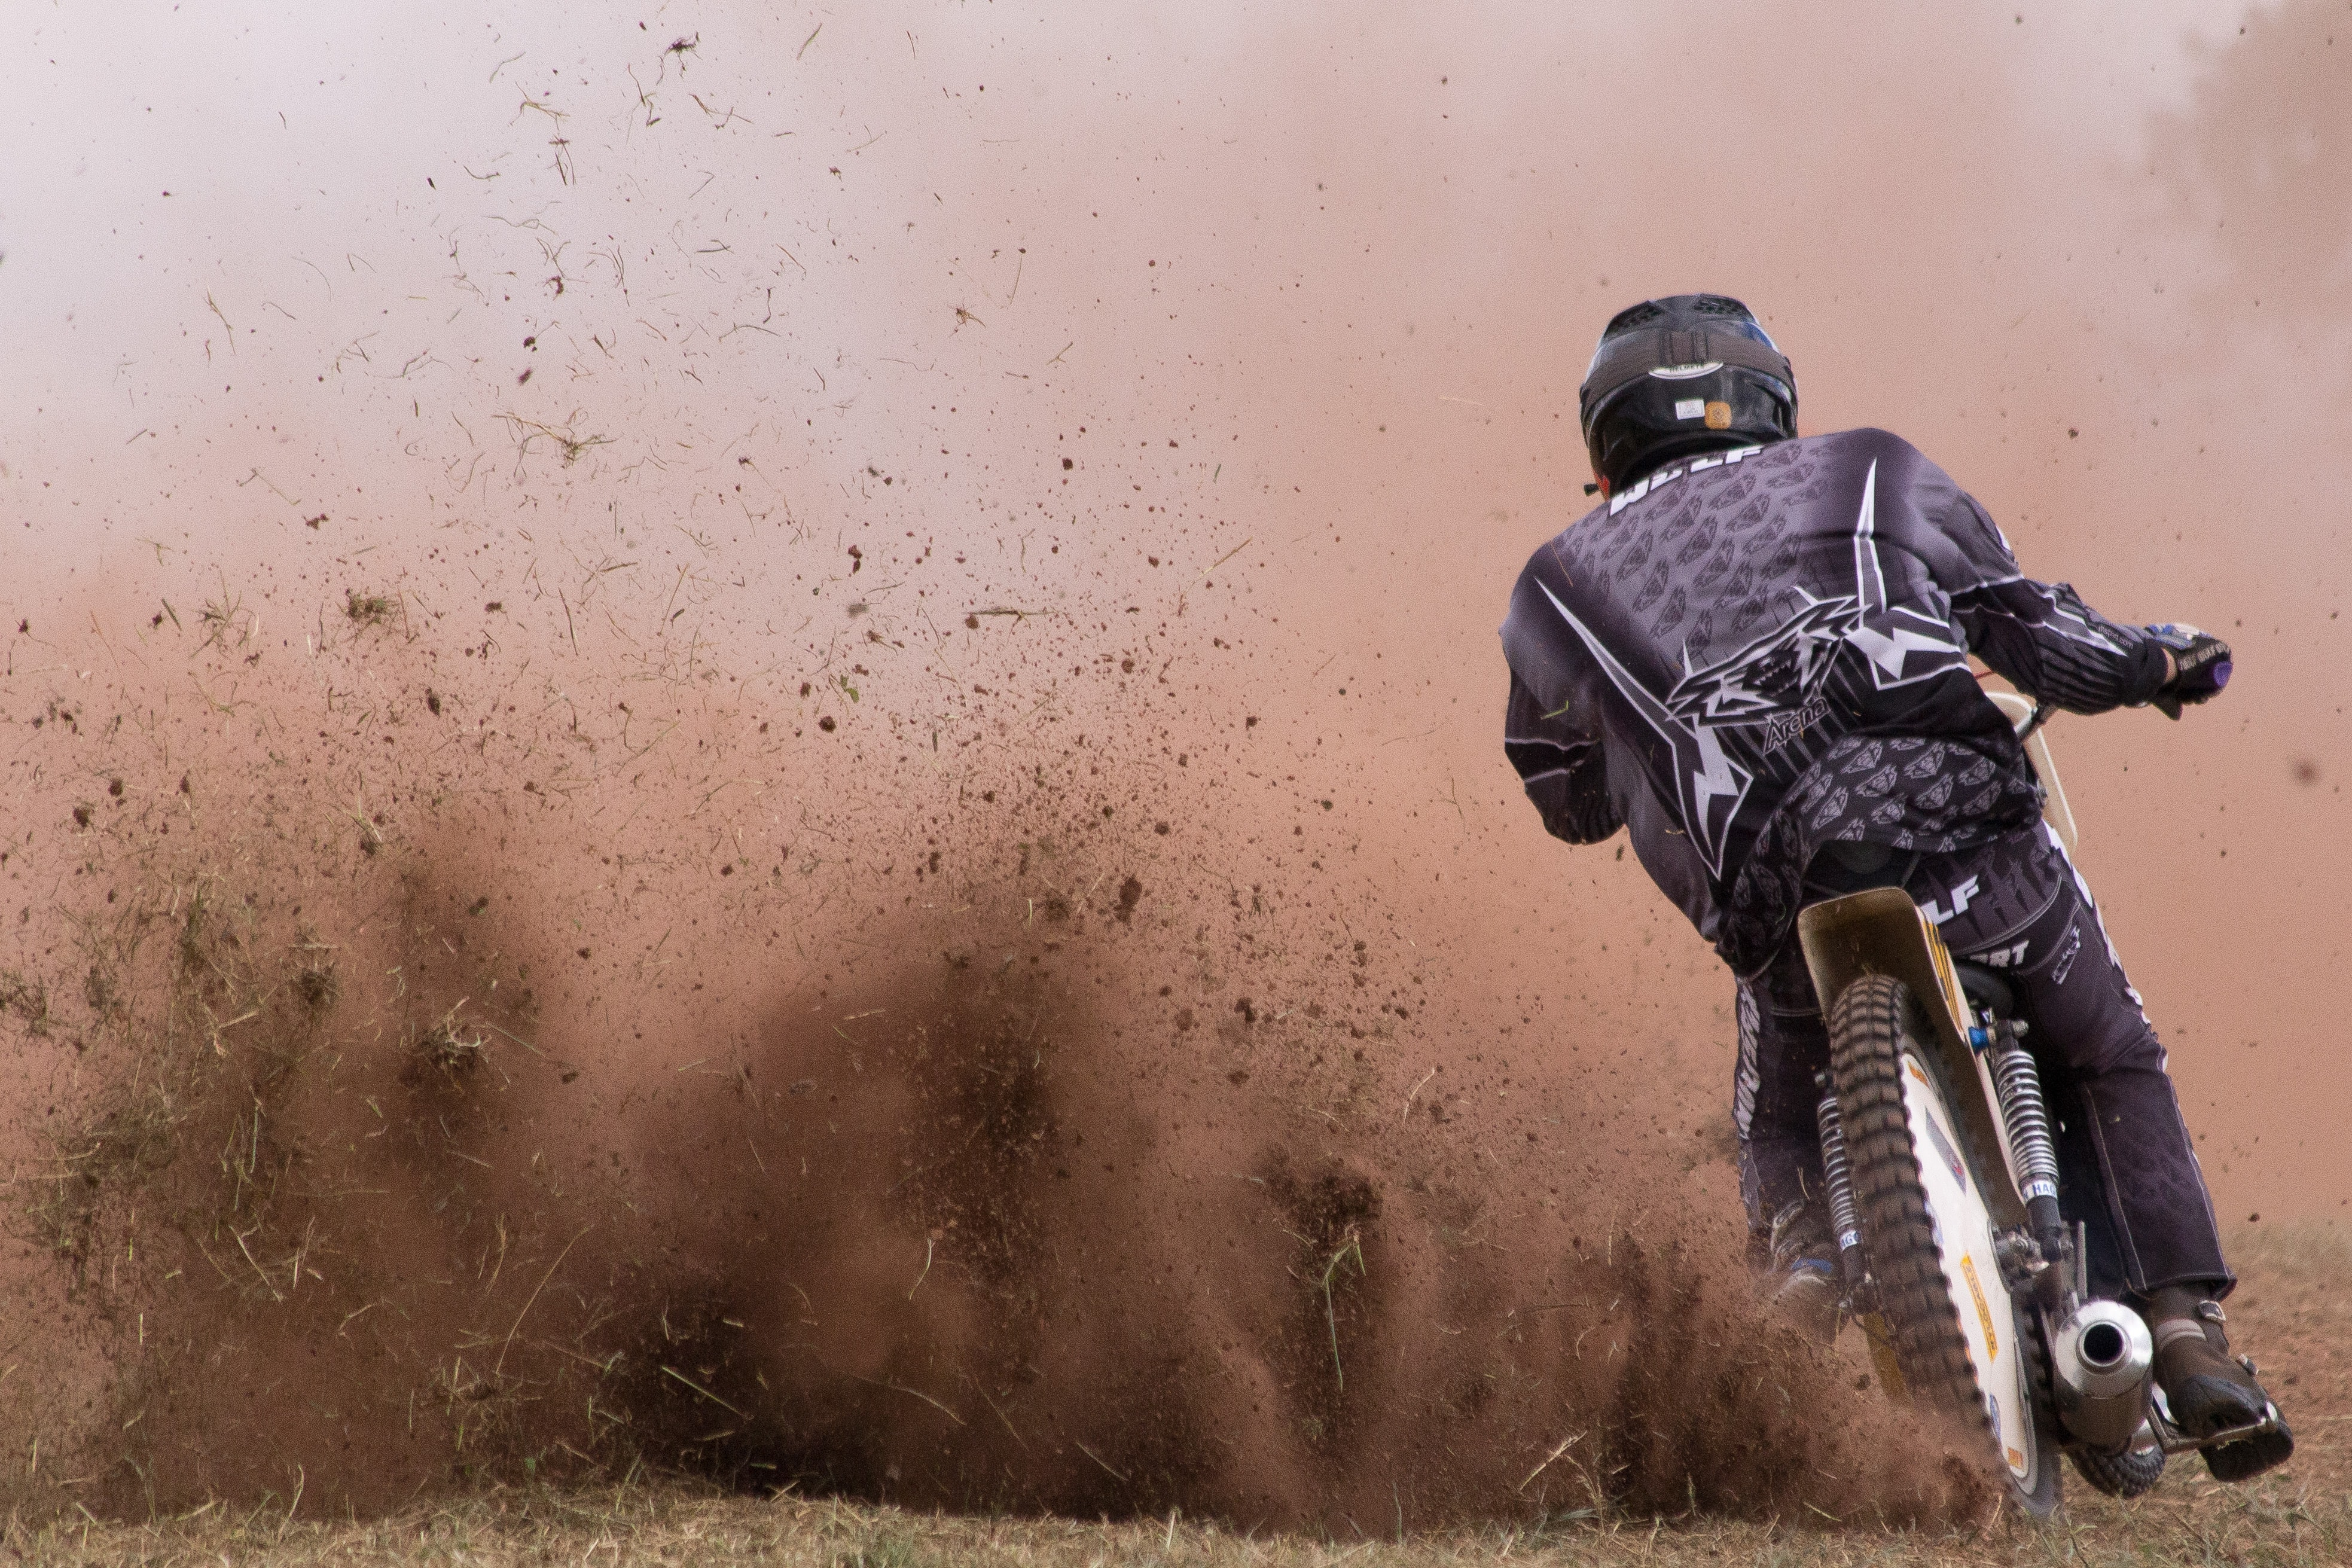 person driving motocross dirt bike during daytime